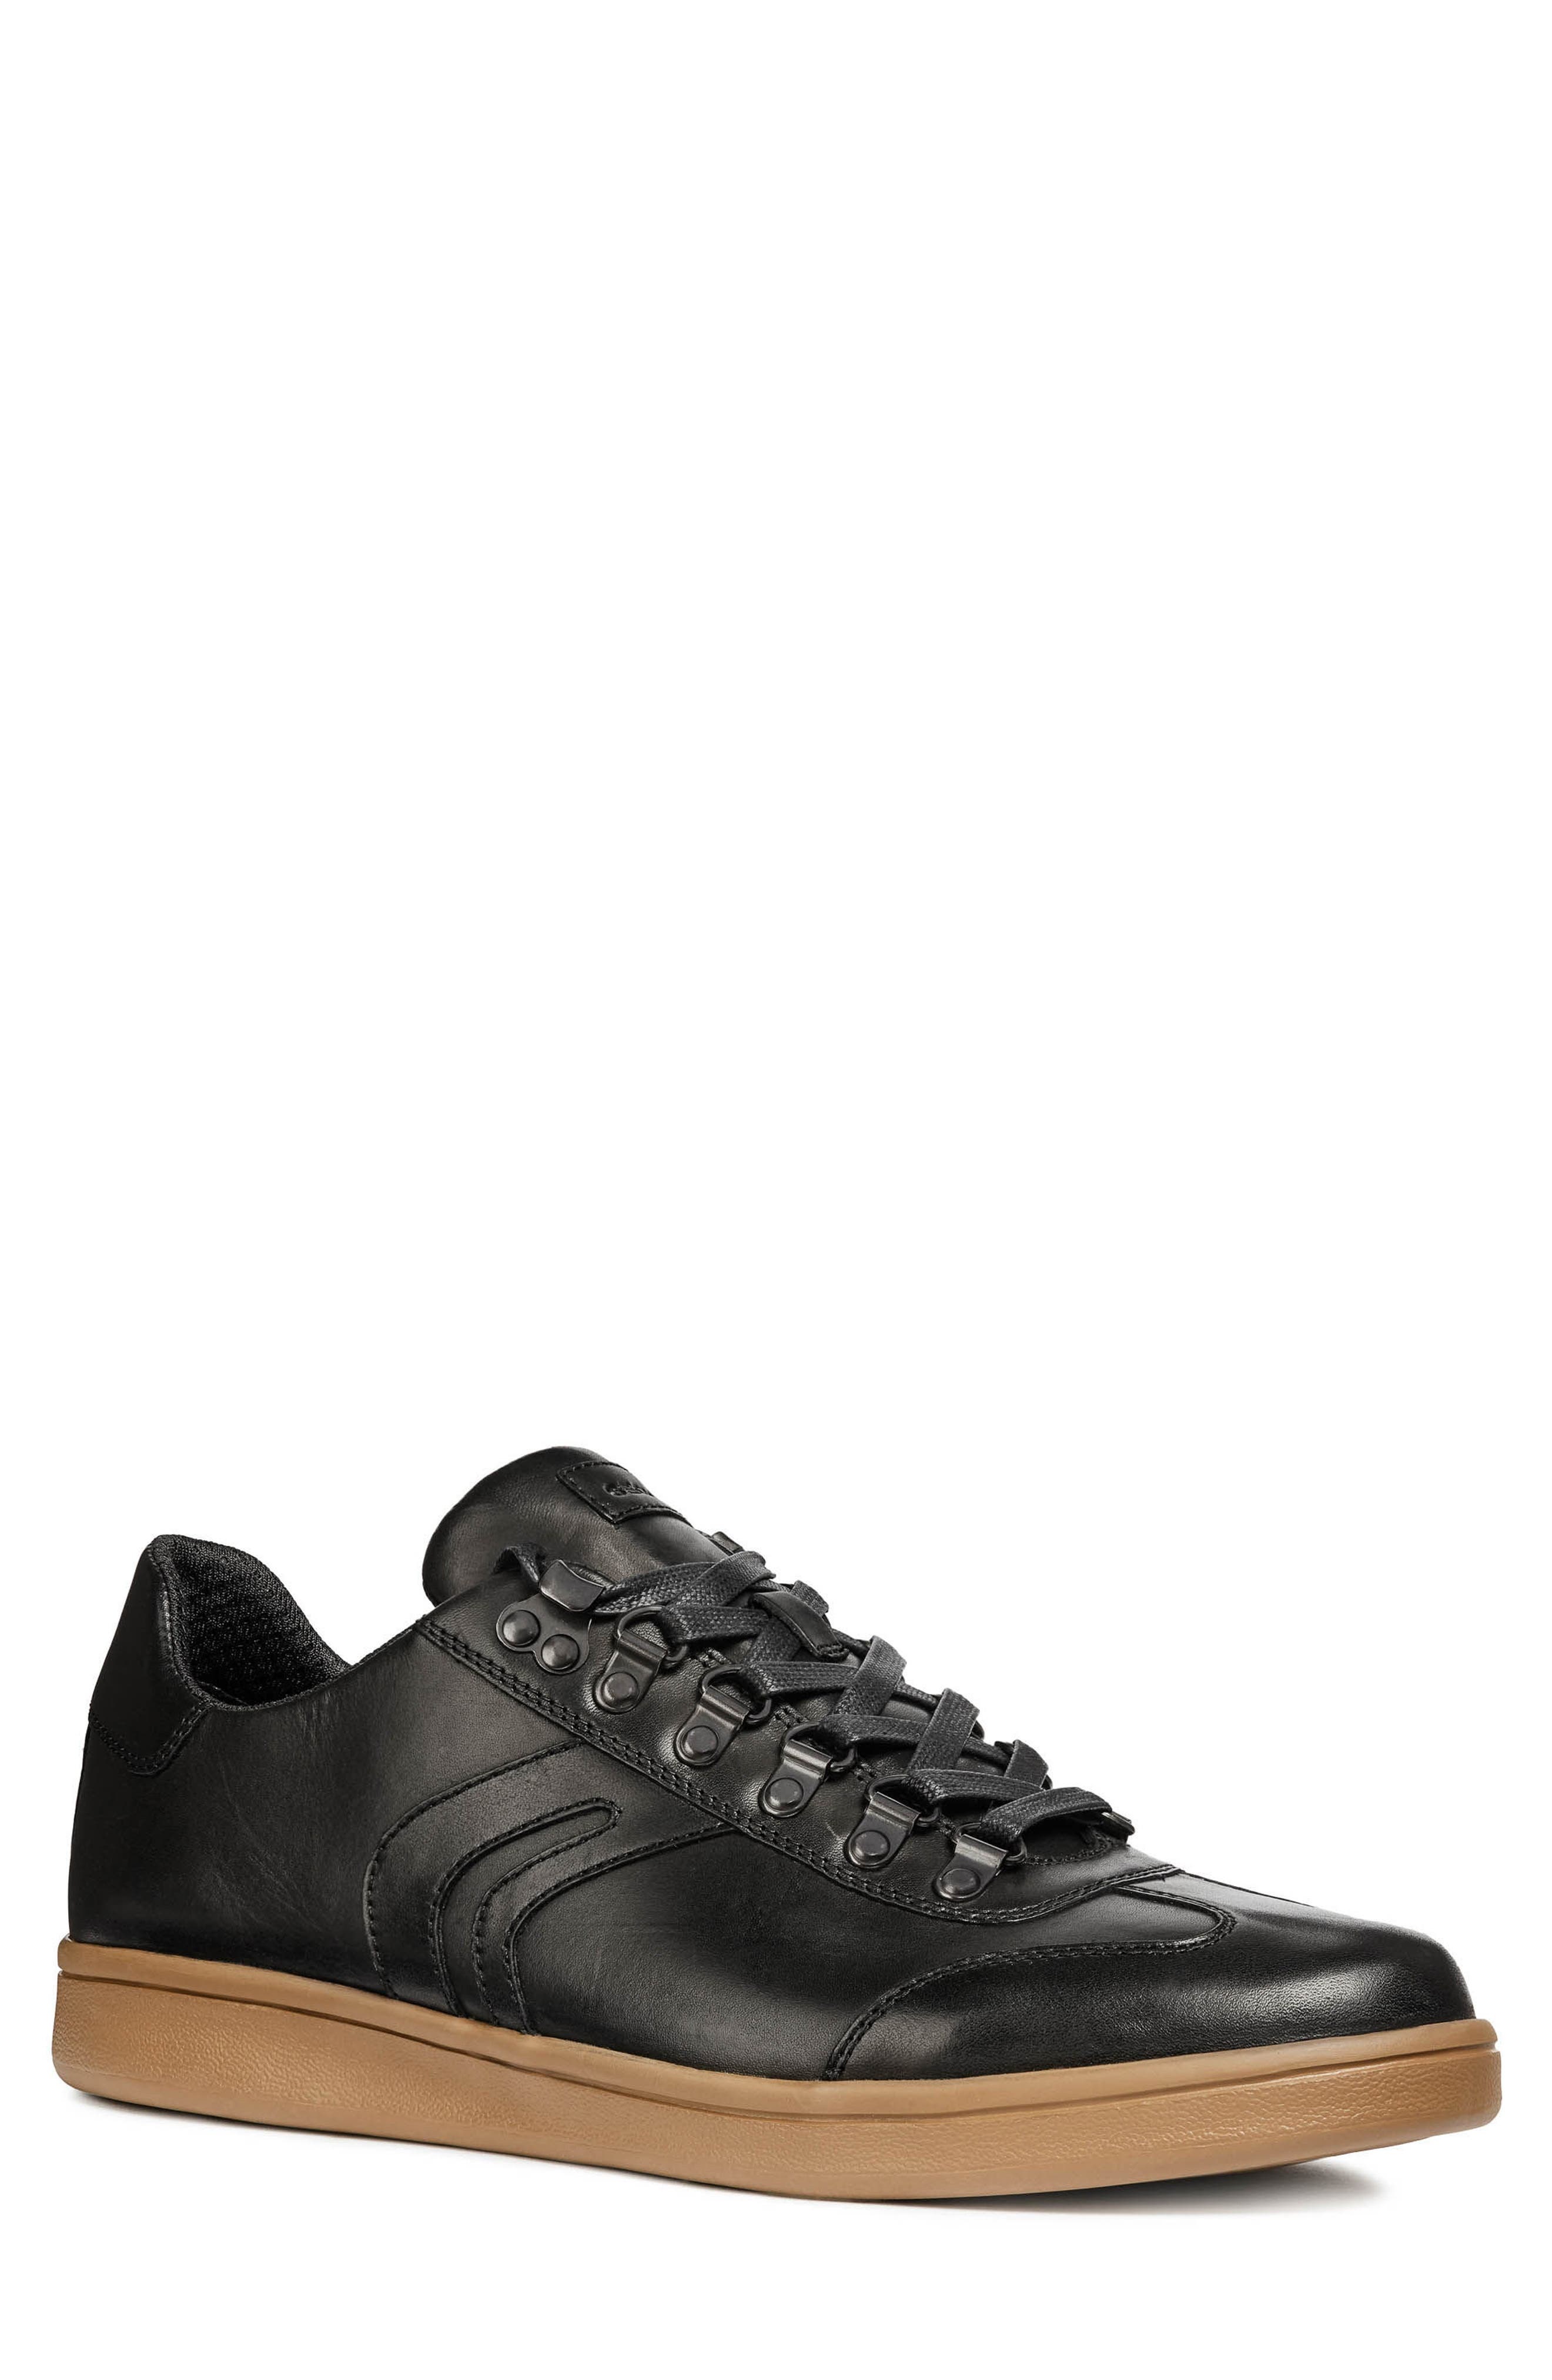 Warrens 12 Low Top Sneaker,                             Main thumbnail 1, color,                             BLACK LEATHER